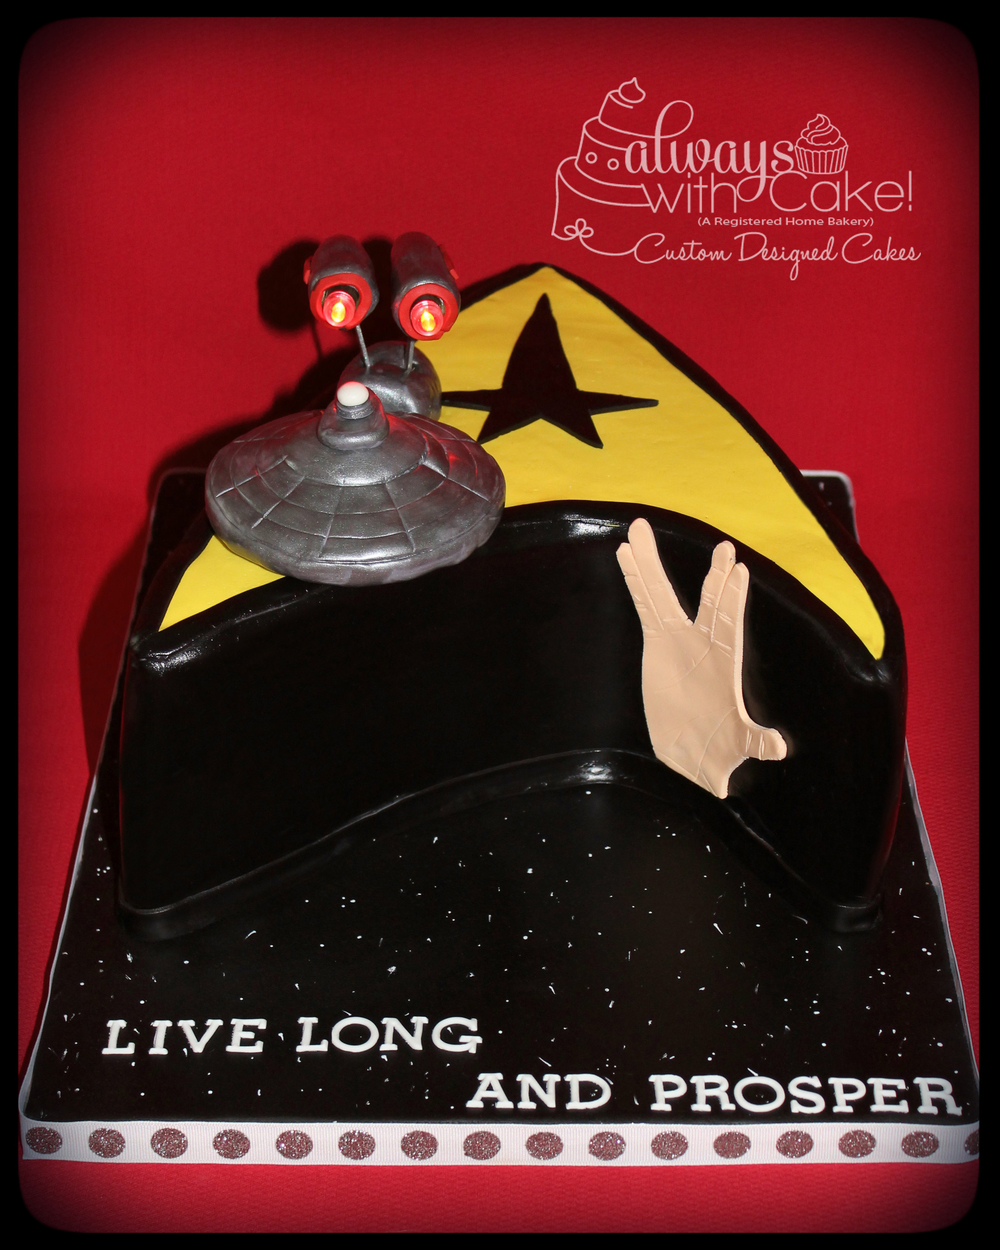 Startrek Birthday Cake